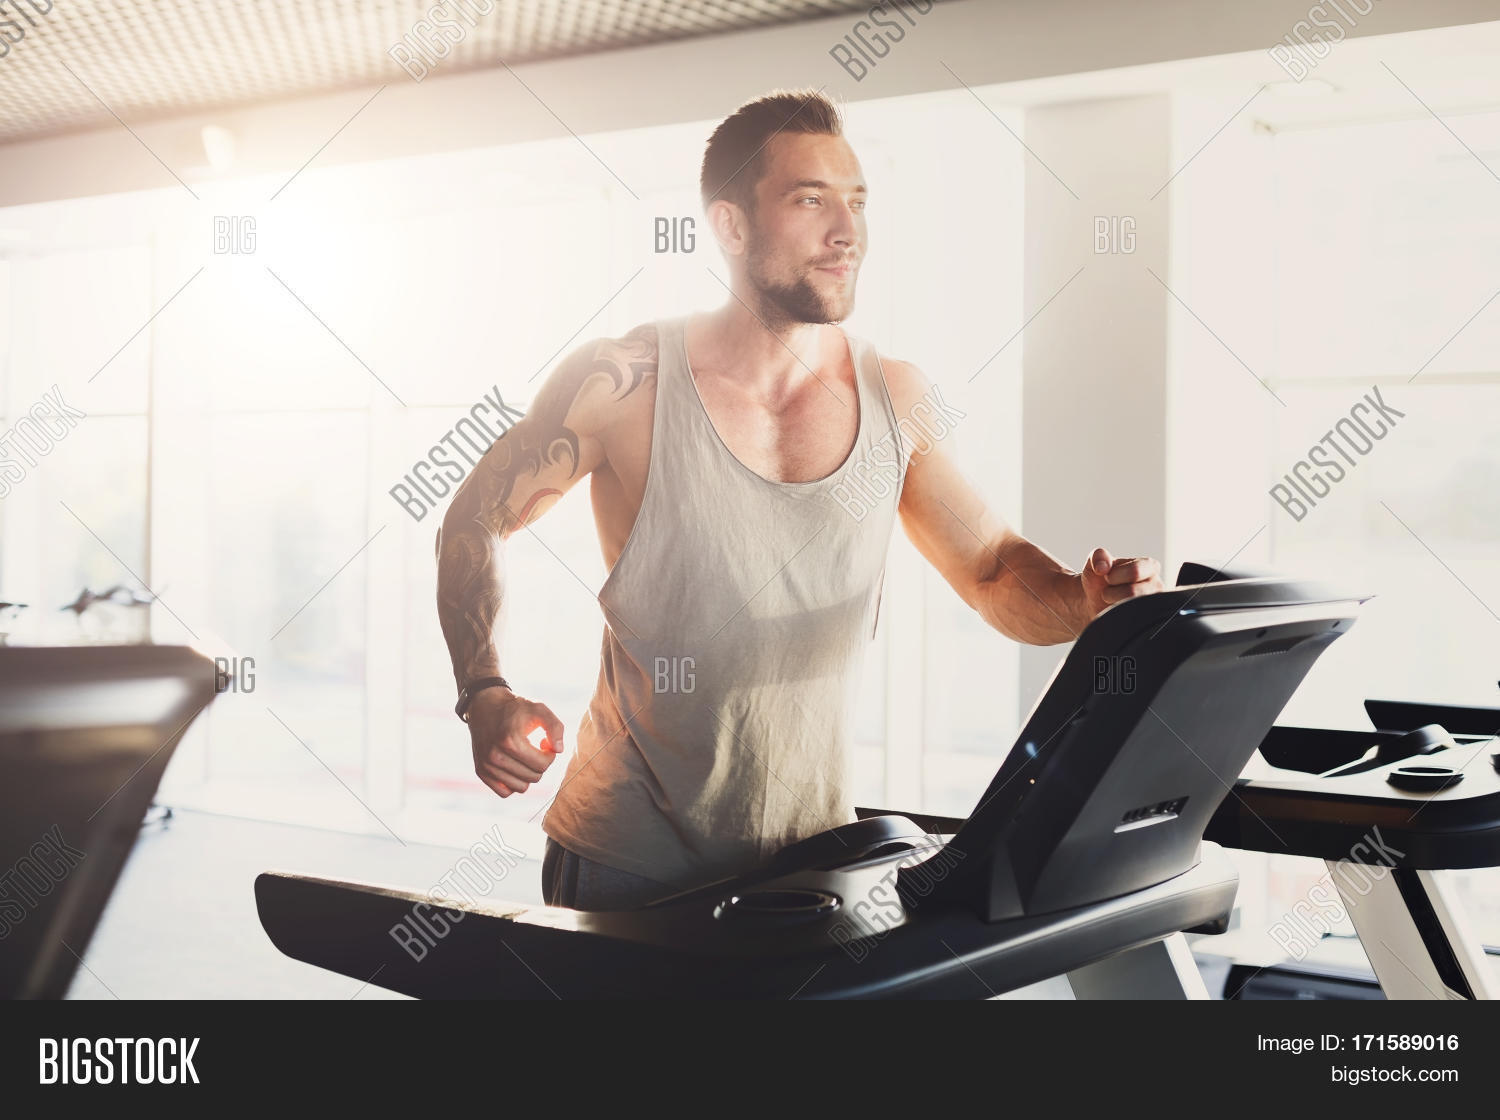 Young Happy Handsome Man With Tattoo In Fitness Club Cardio Workout Running On Treadmill